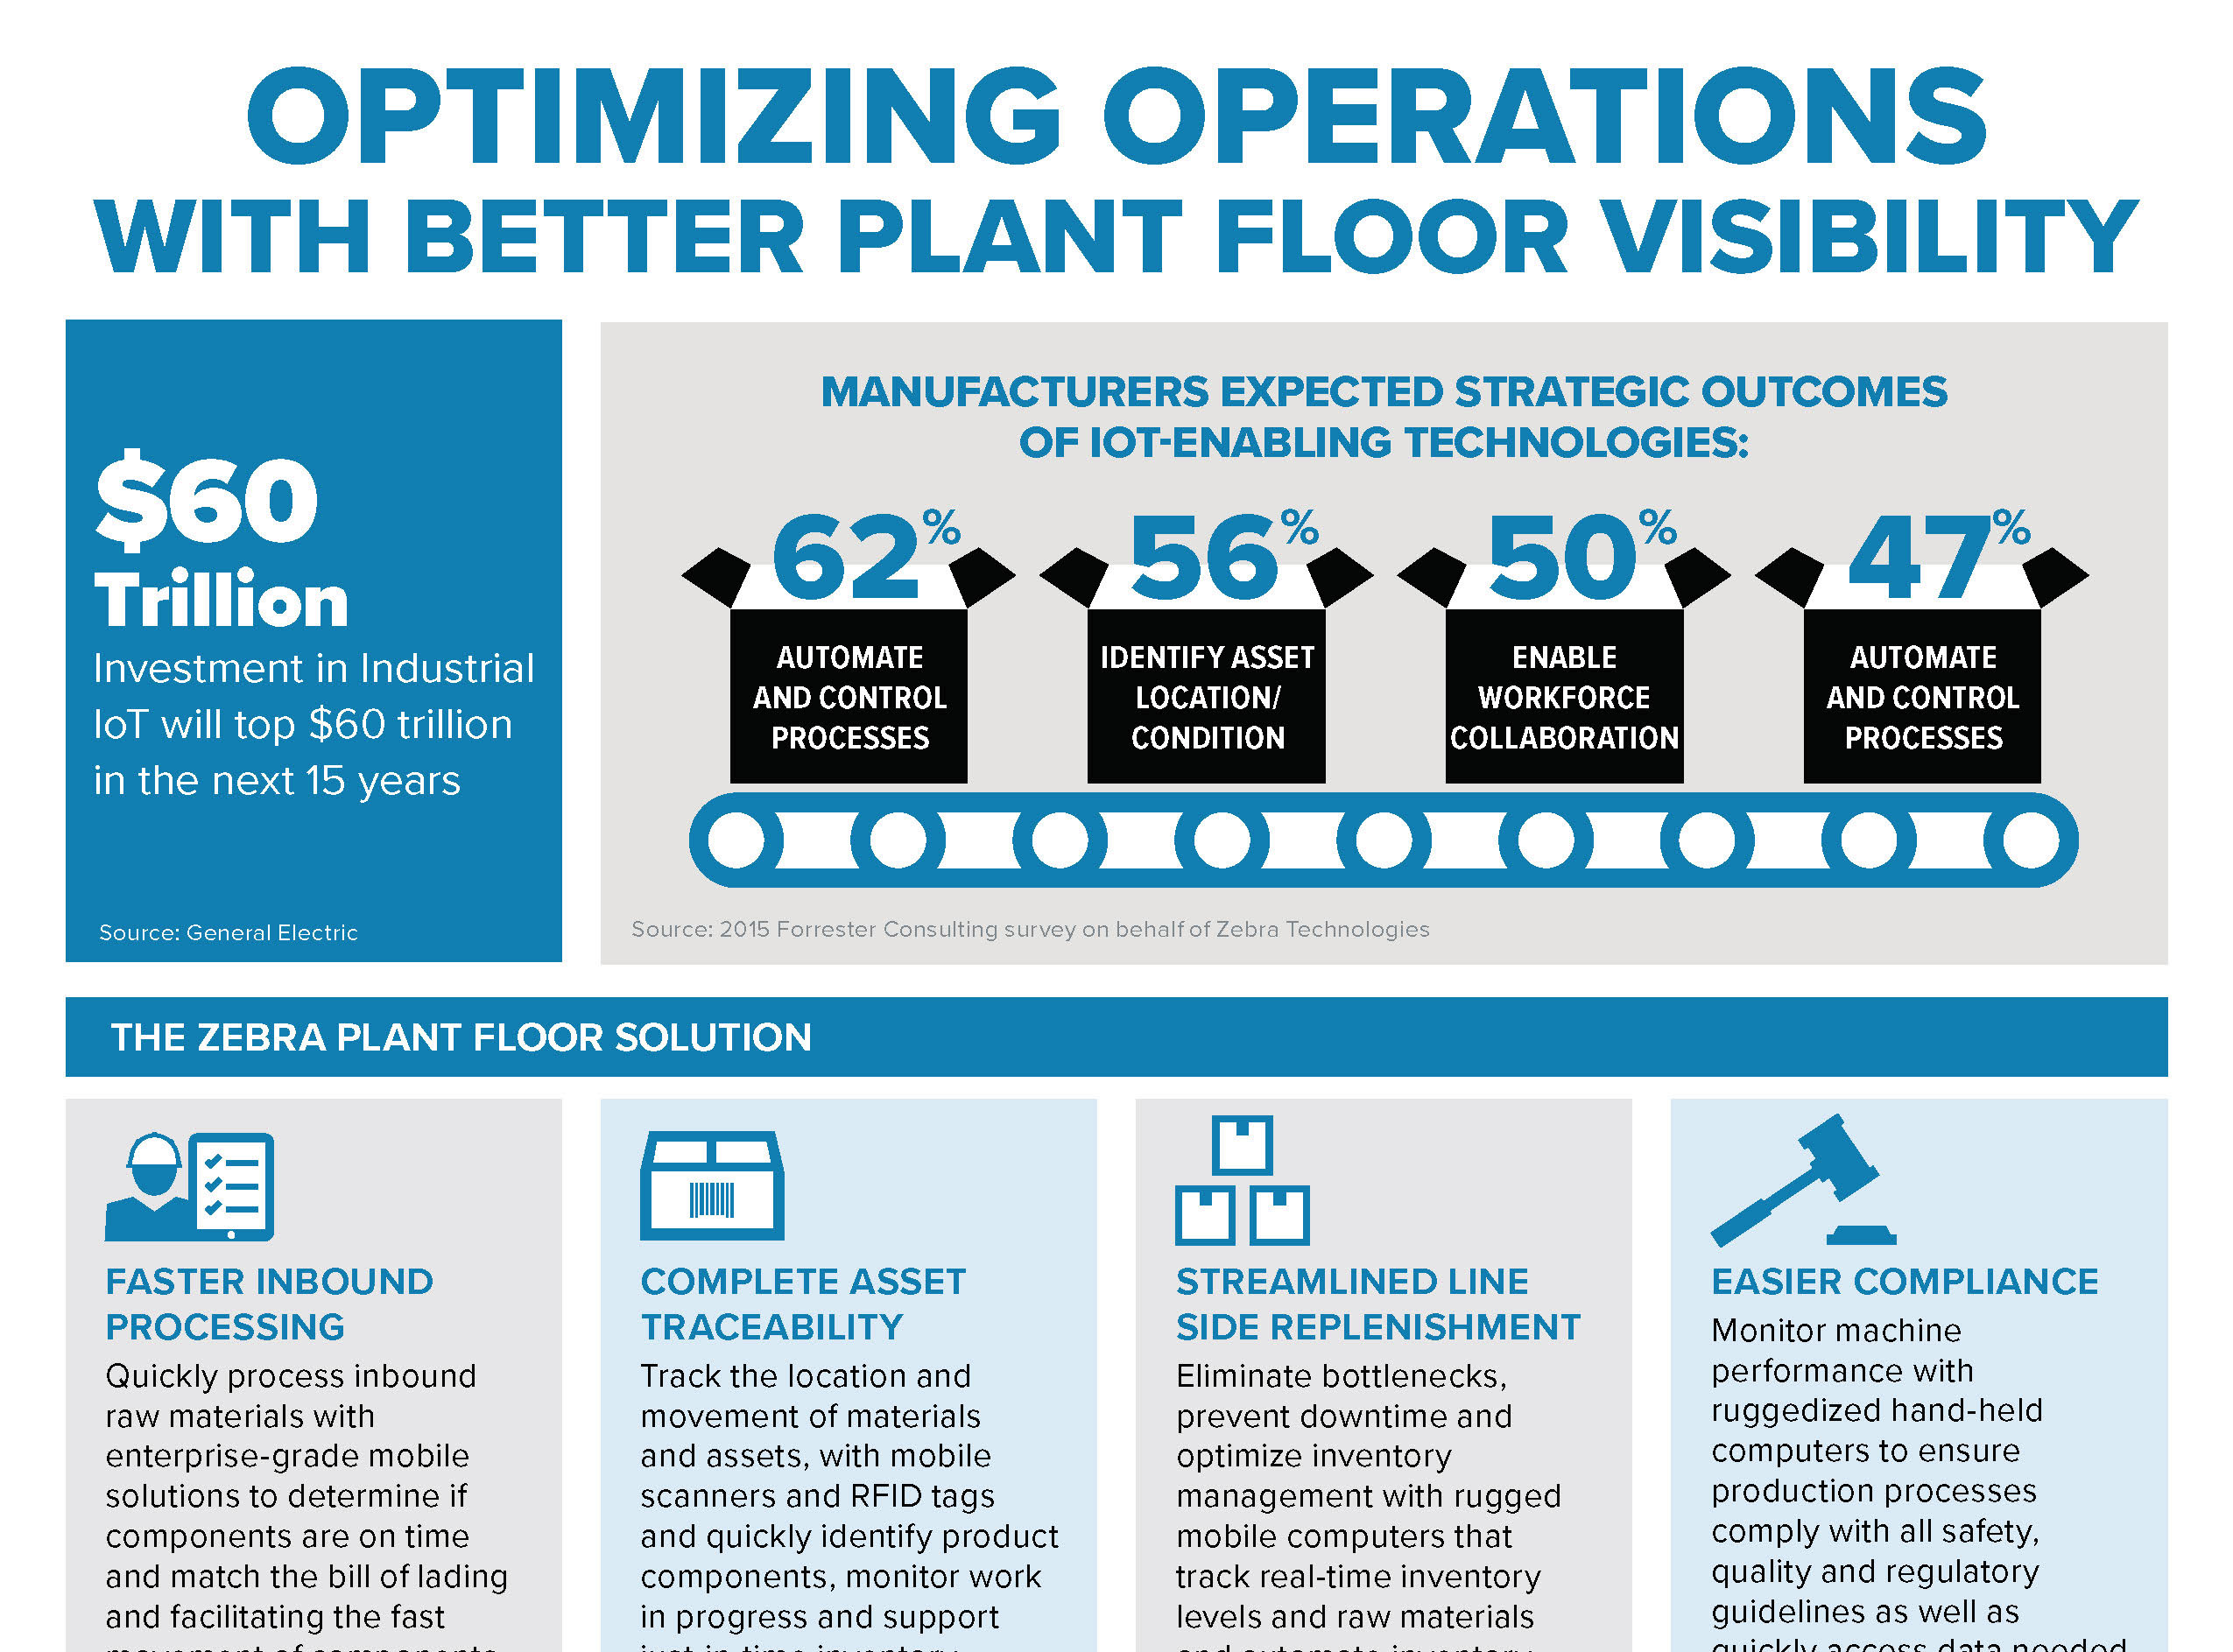 Optimizing Operations With Better Plant Floor Visibility